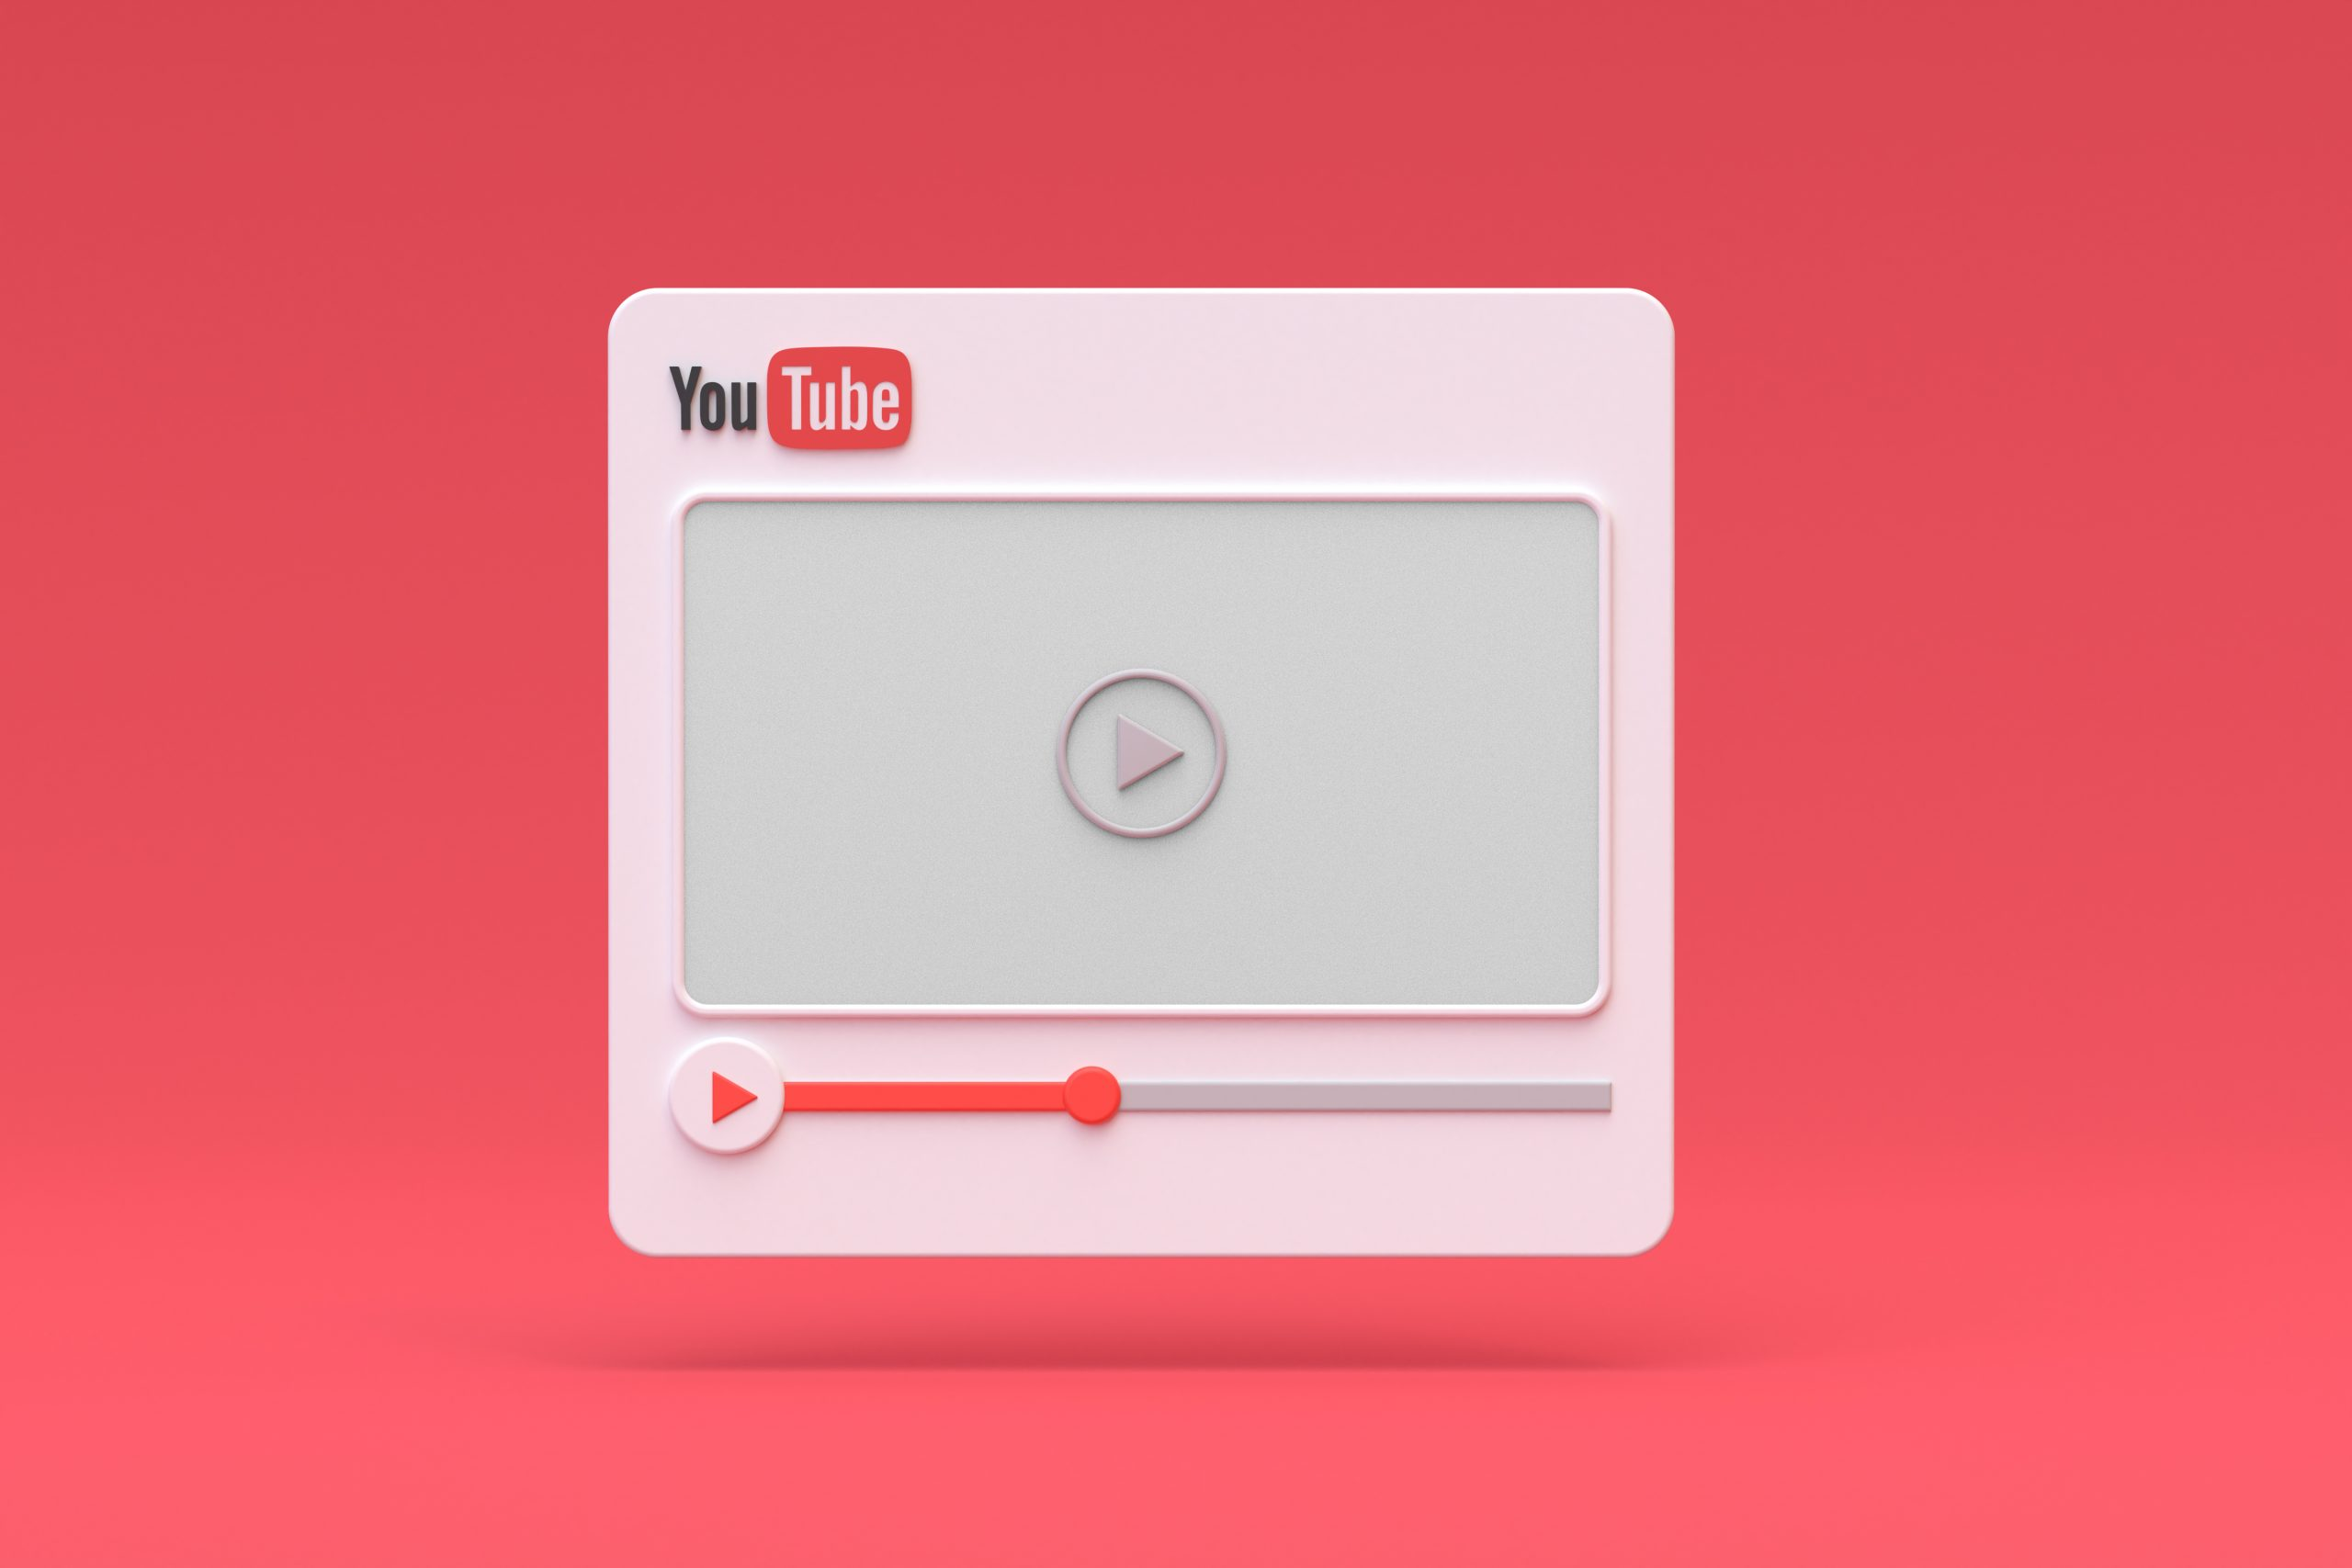 Ways to increase your watch time on your Youtube videos